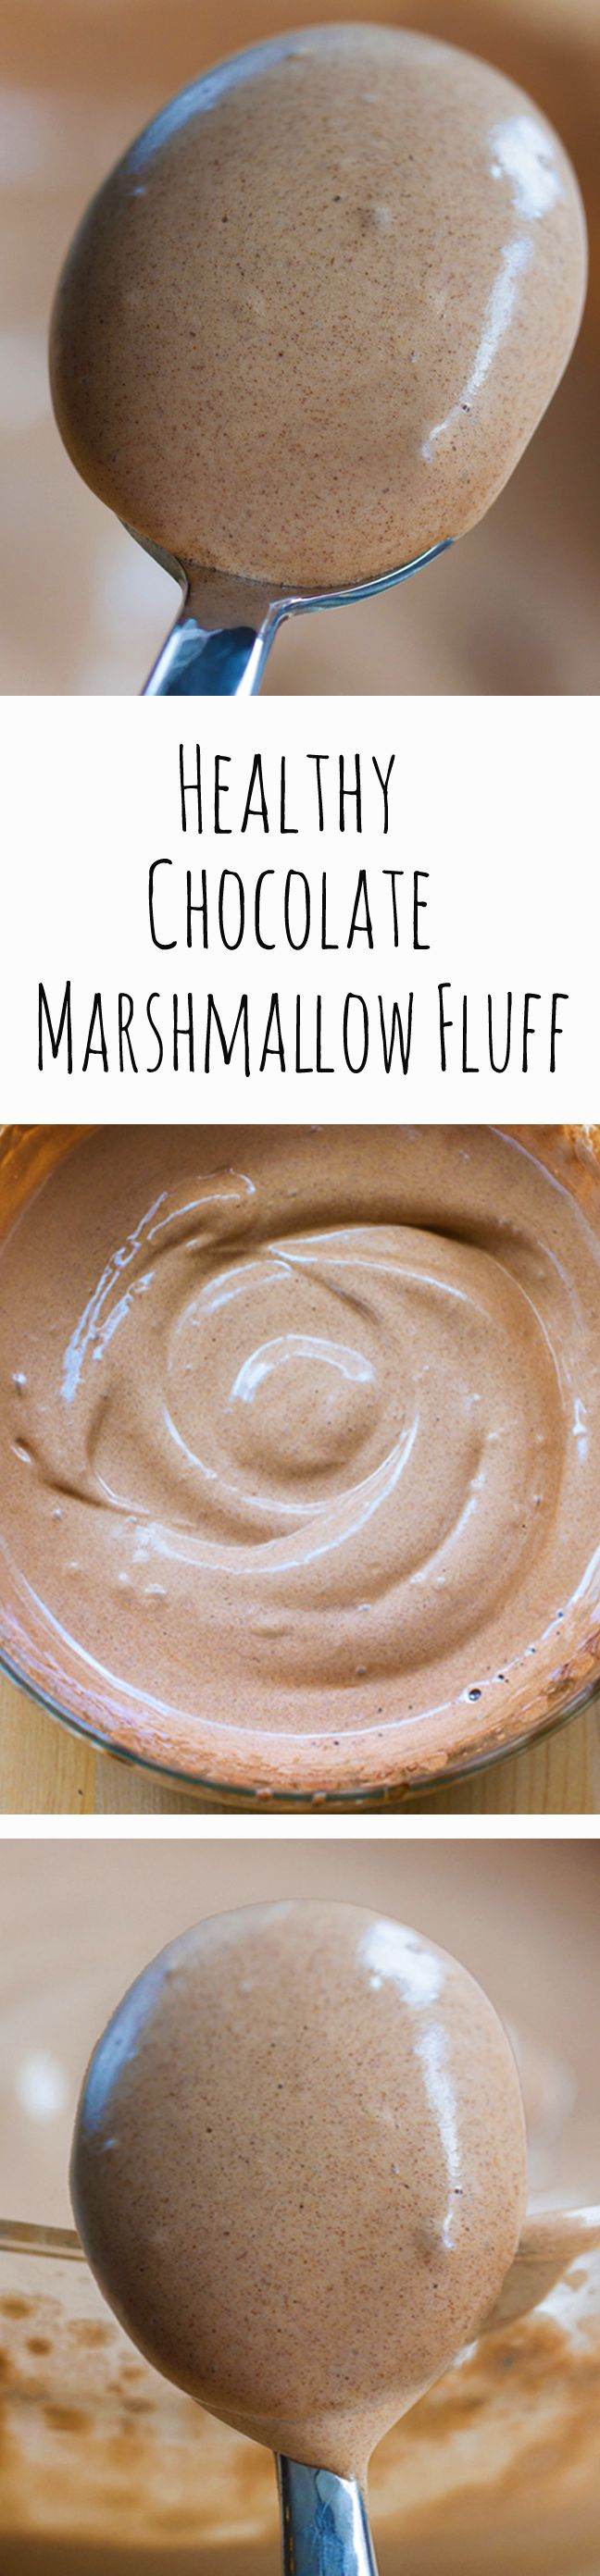 Chocolate Marshmallow Fluff, with NO corn syrup, and no unhealthy chemical ingredients